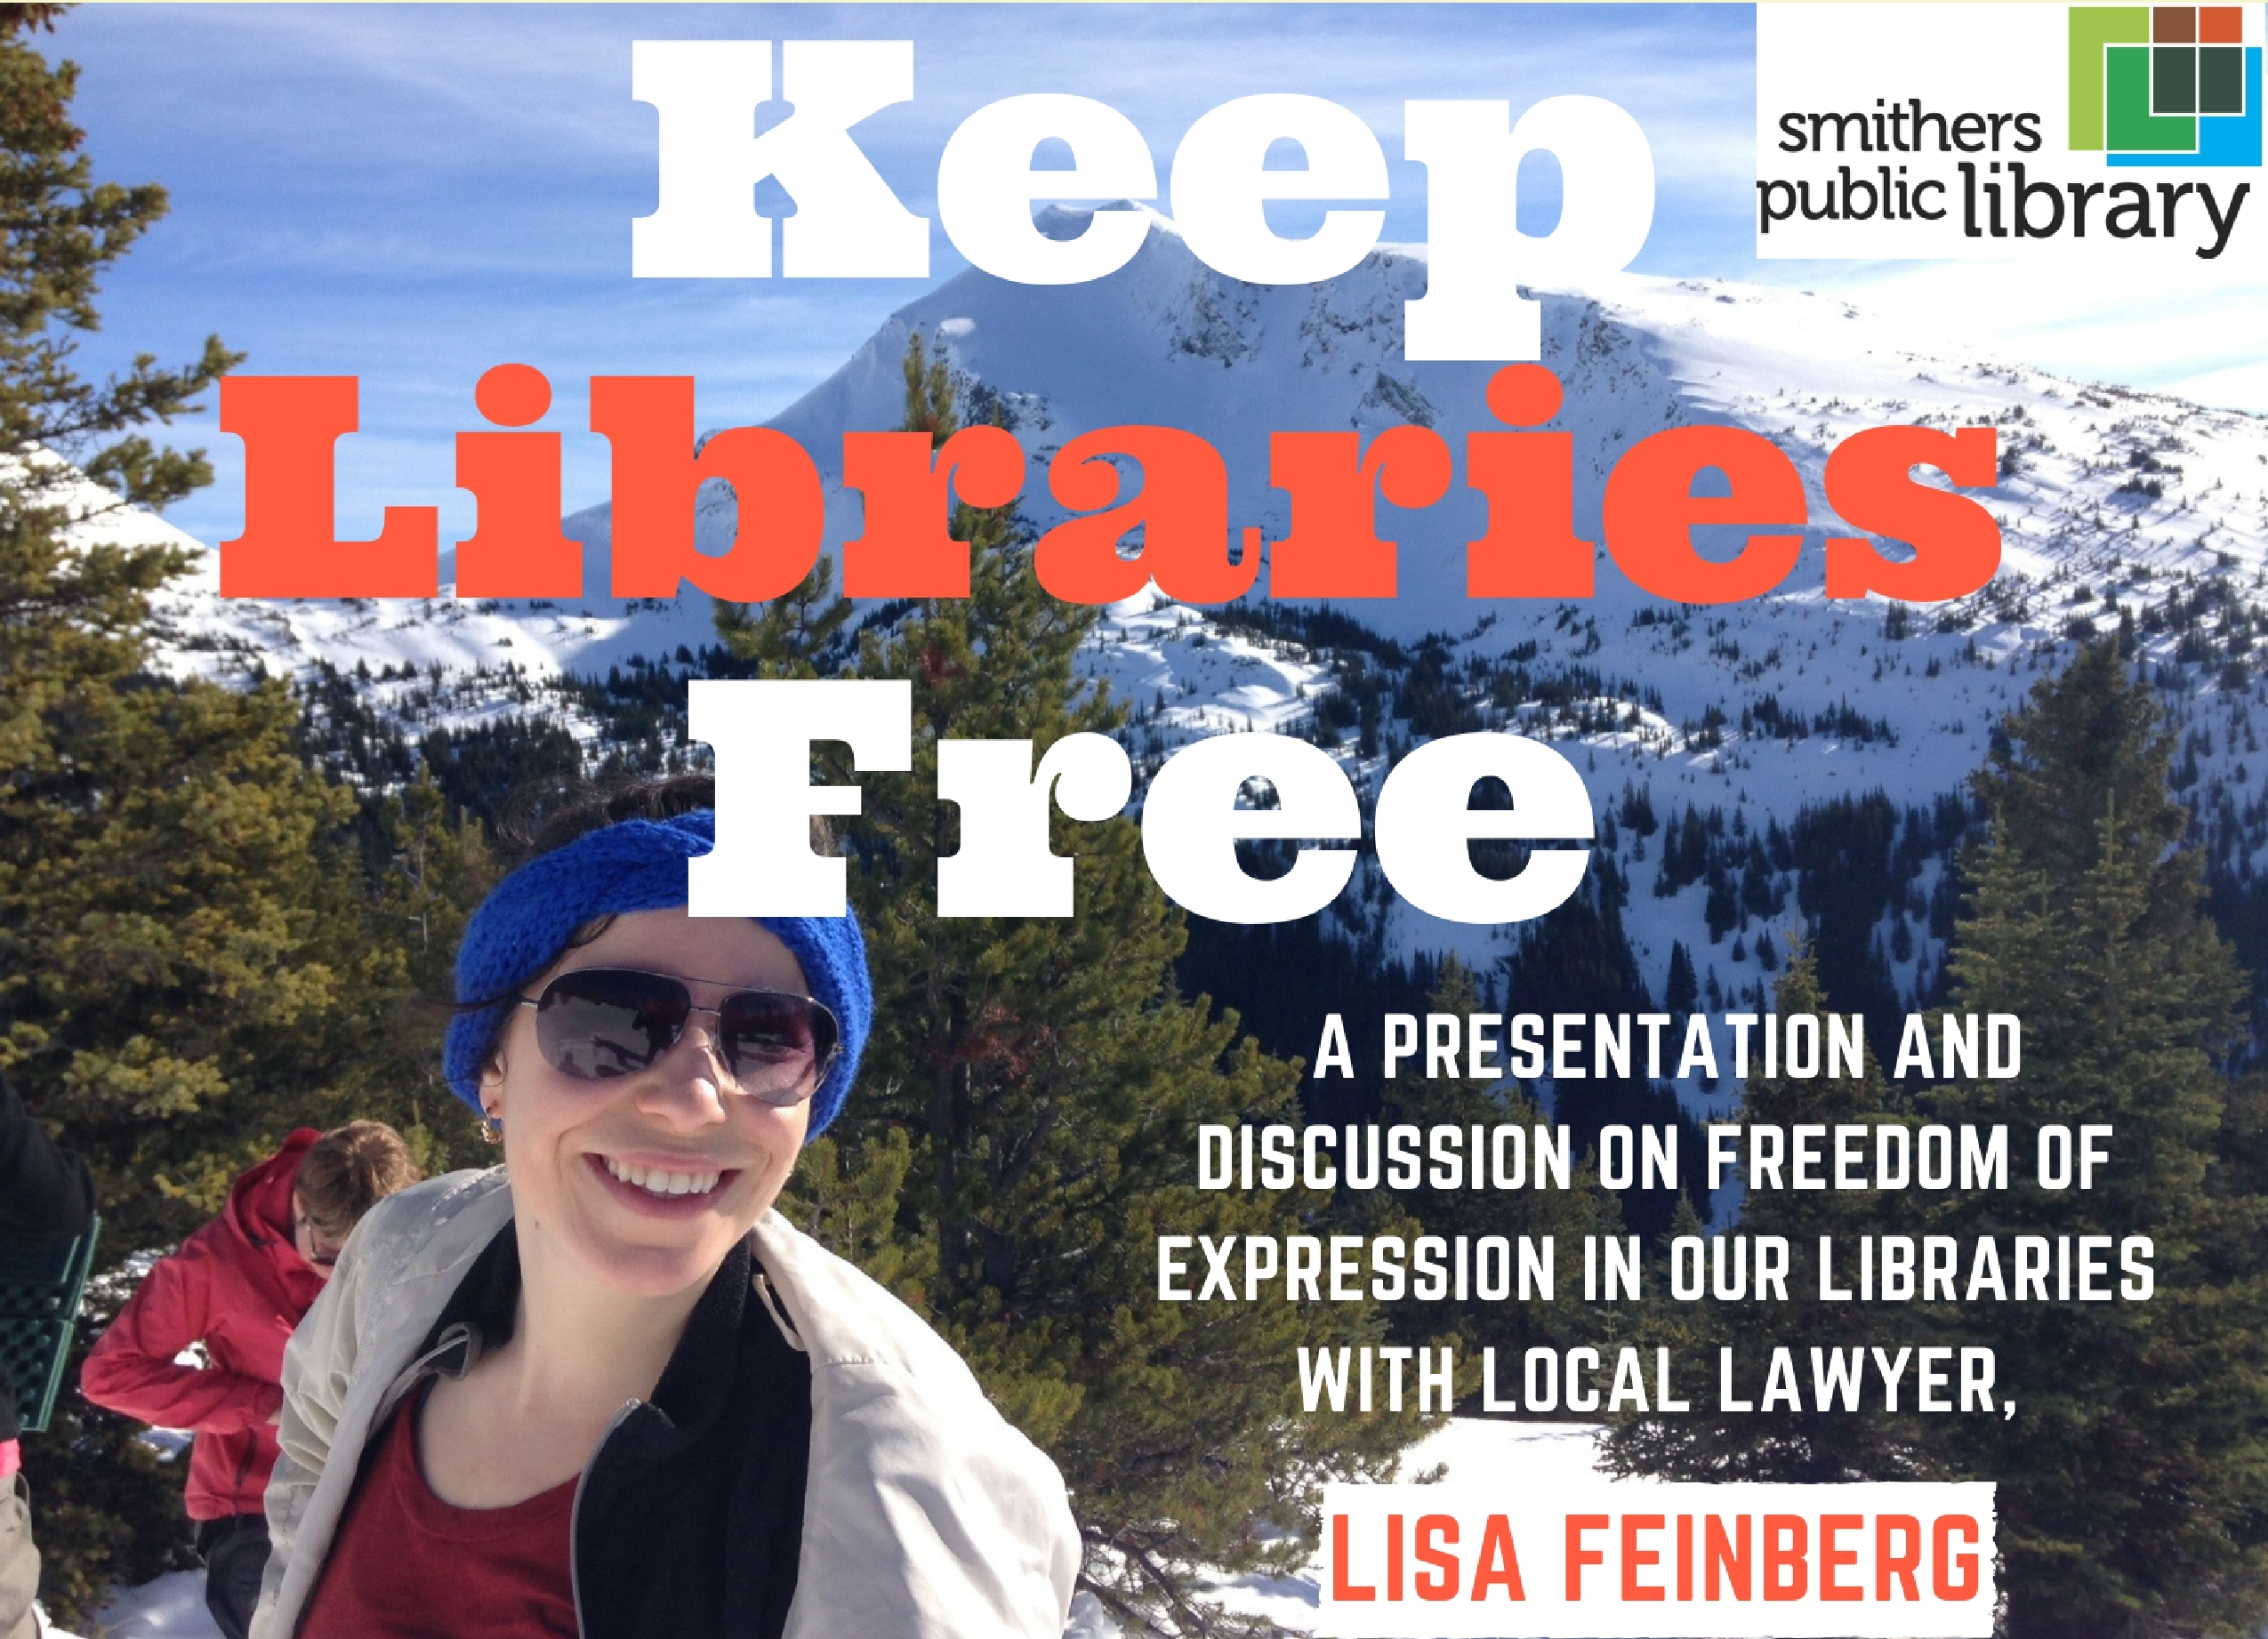 Keep Libraries Free image text 2017